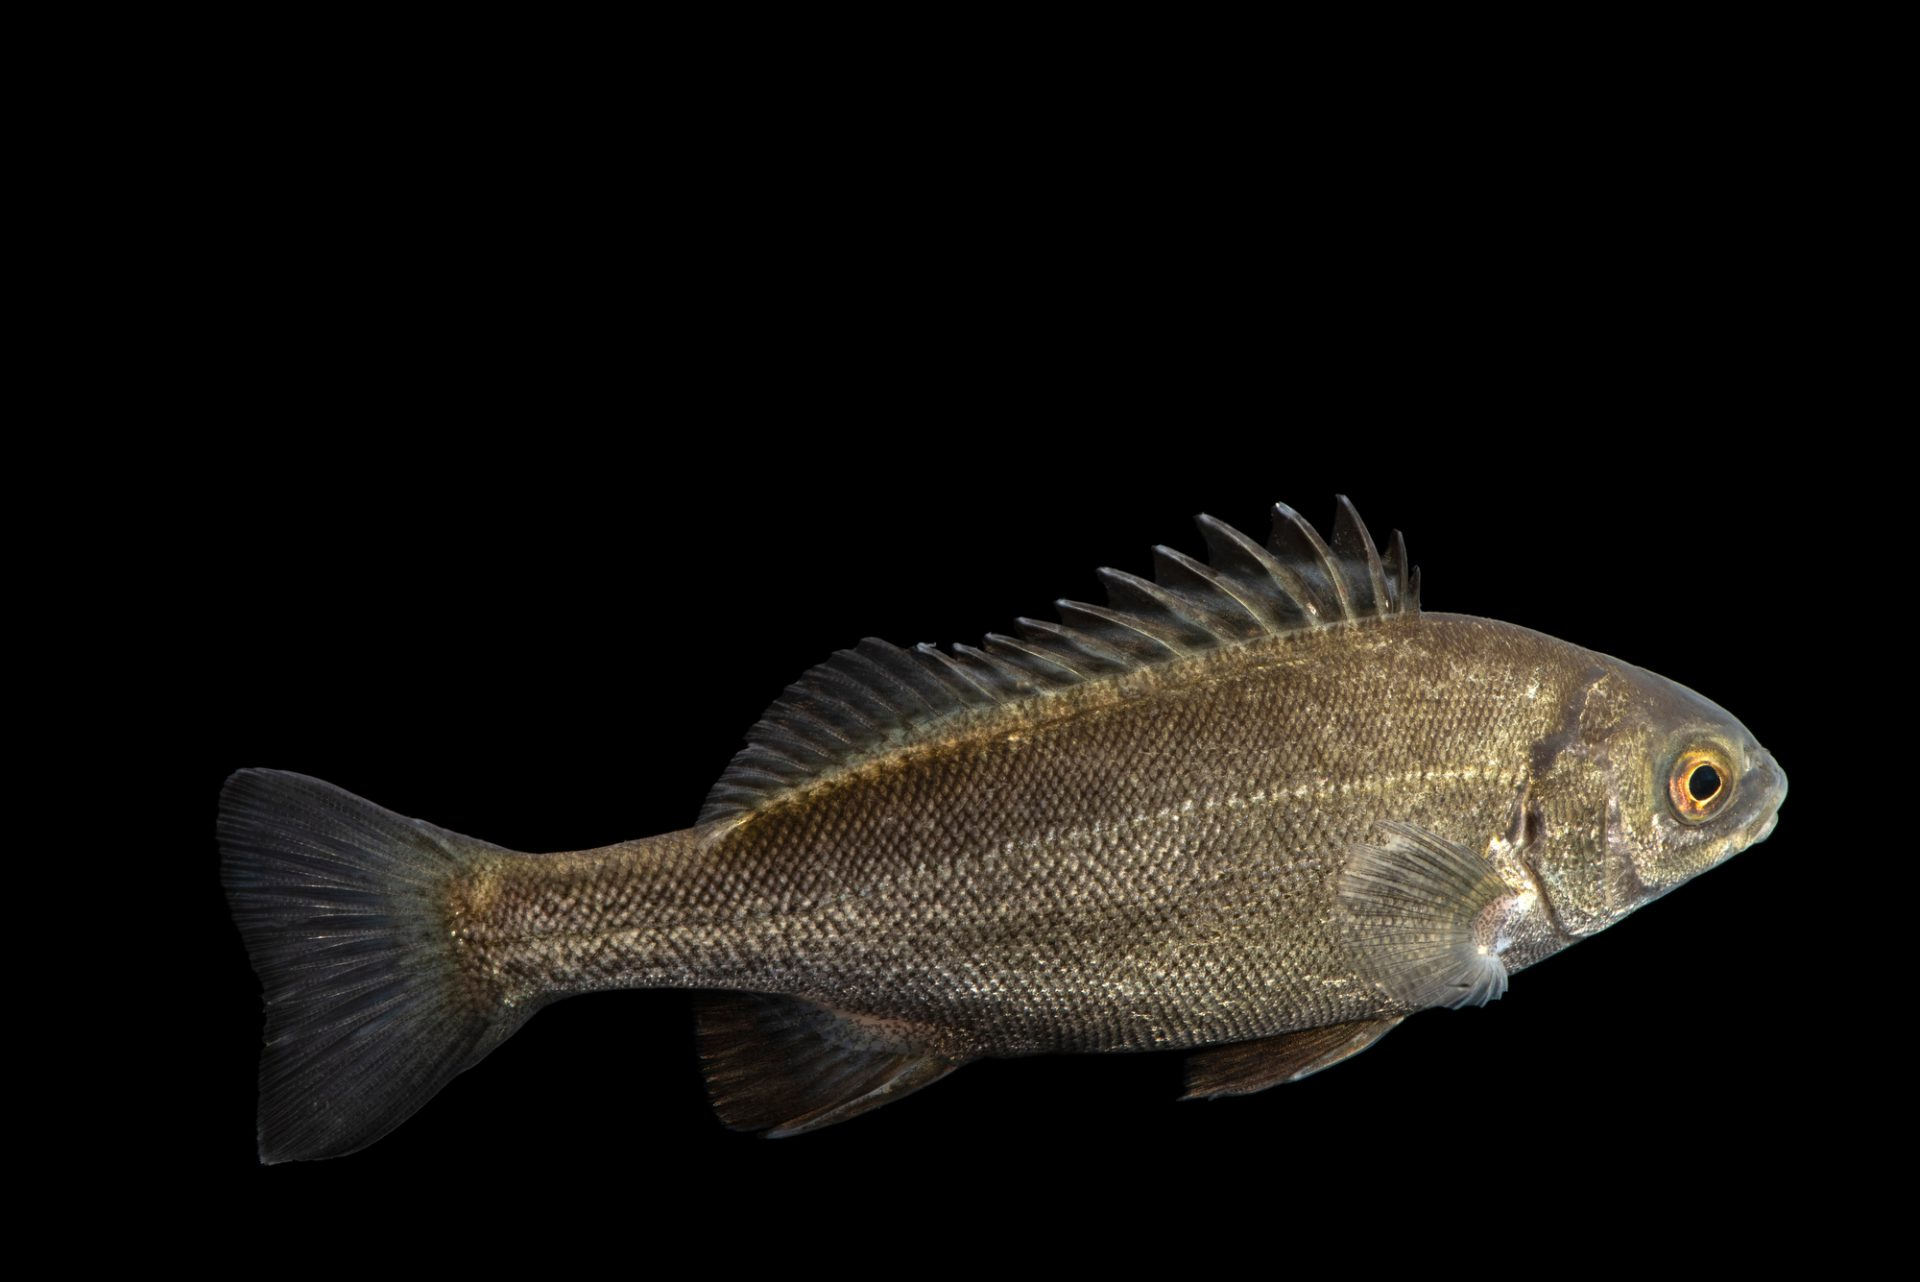 Photo: Silver perch (Bidyanus bidyanus) at the Freshwater Ecology and Marine Biology Dept. at Templestowe College.